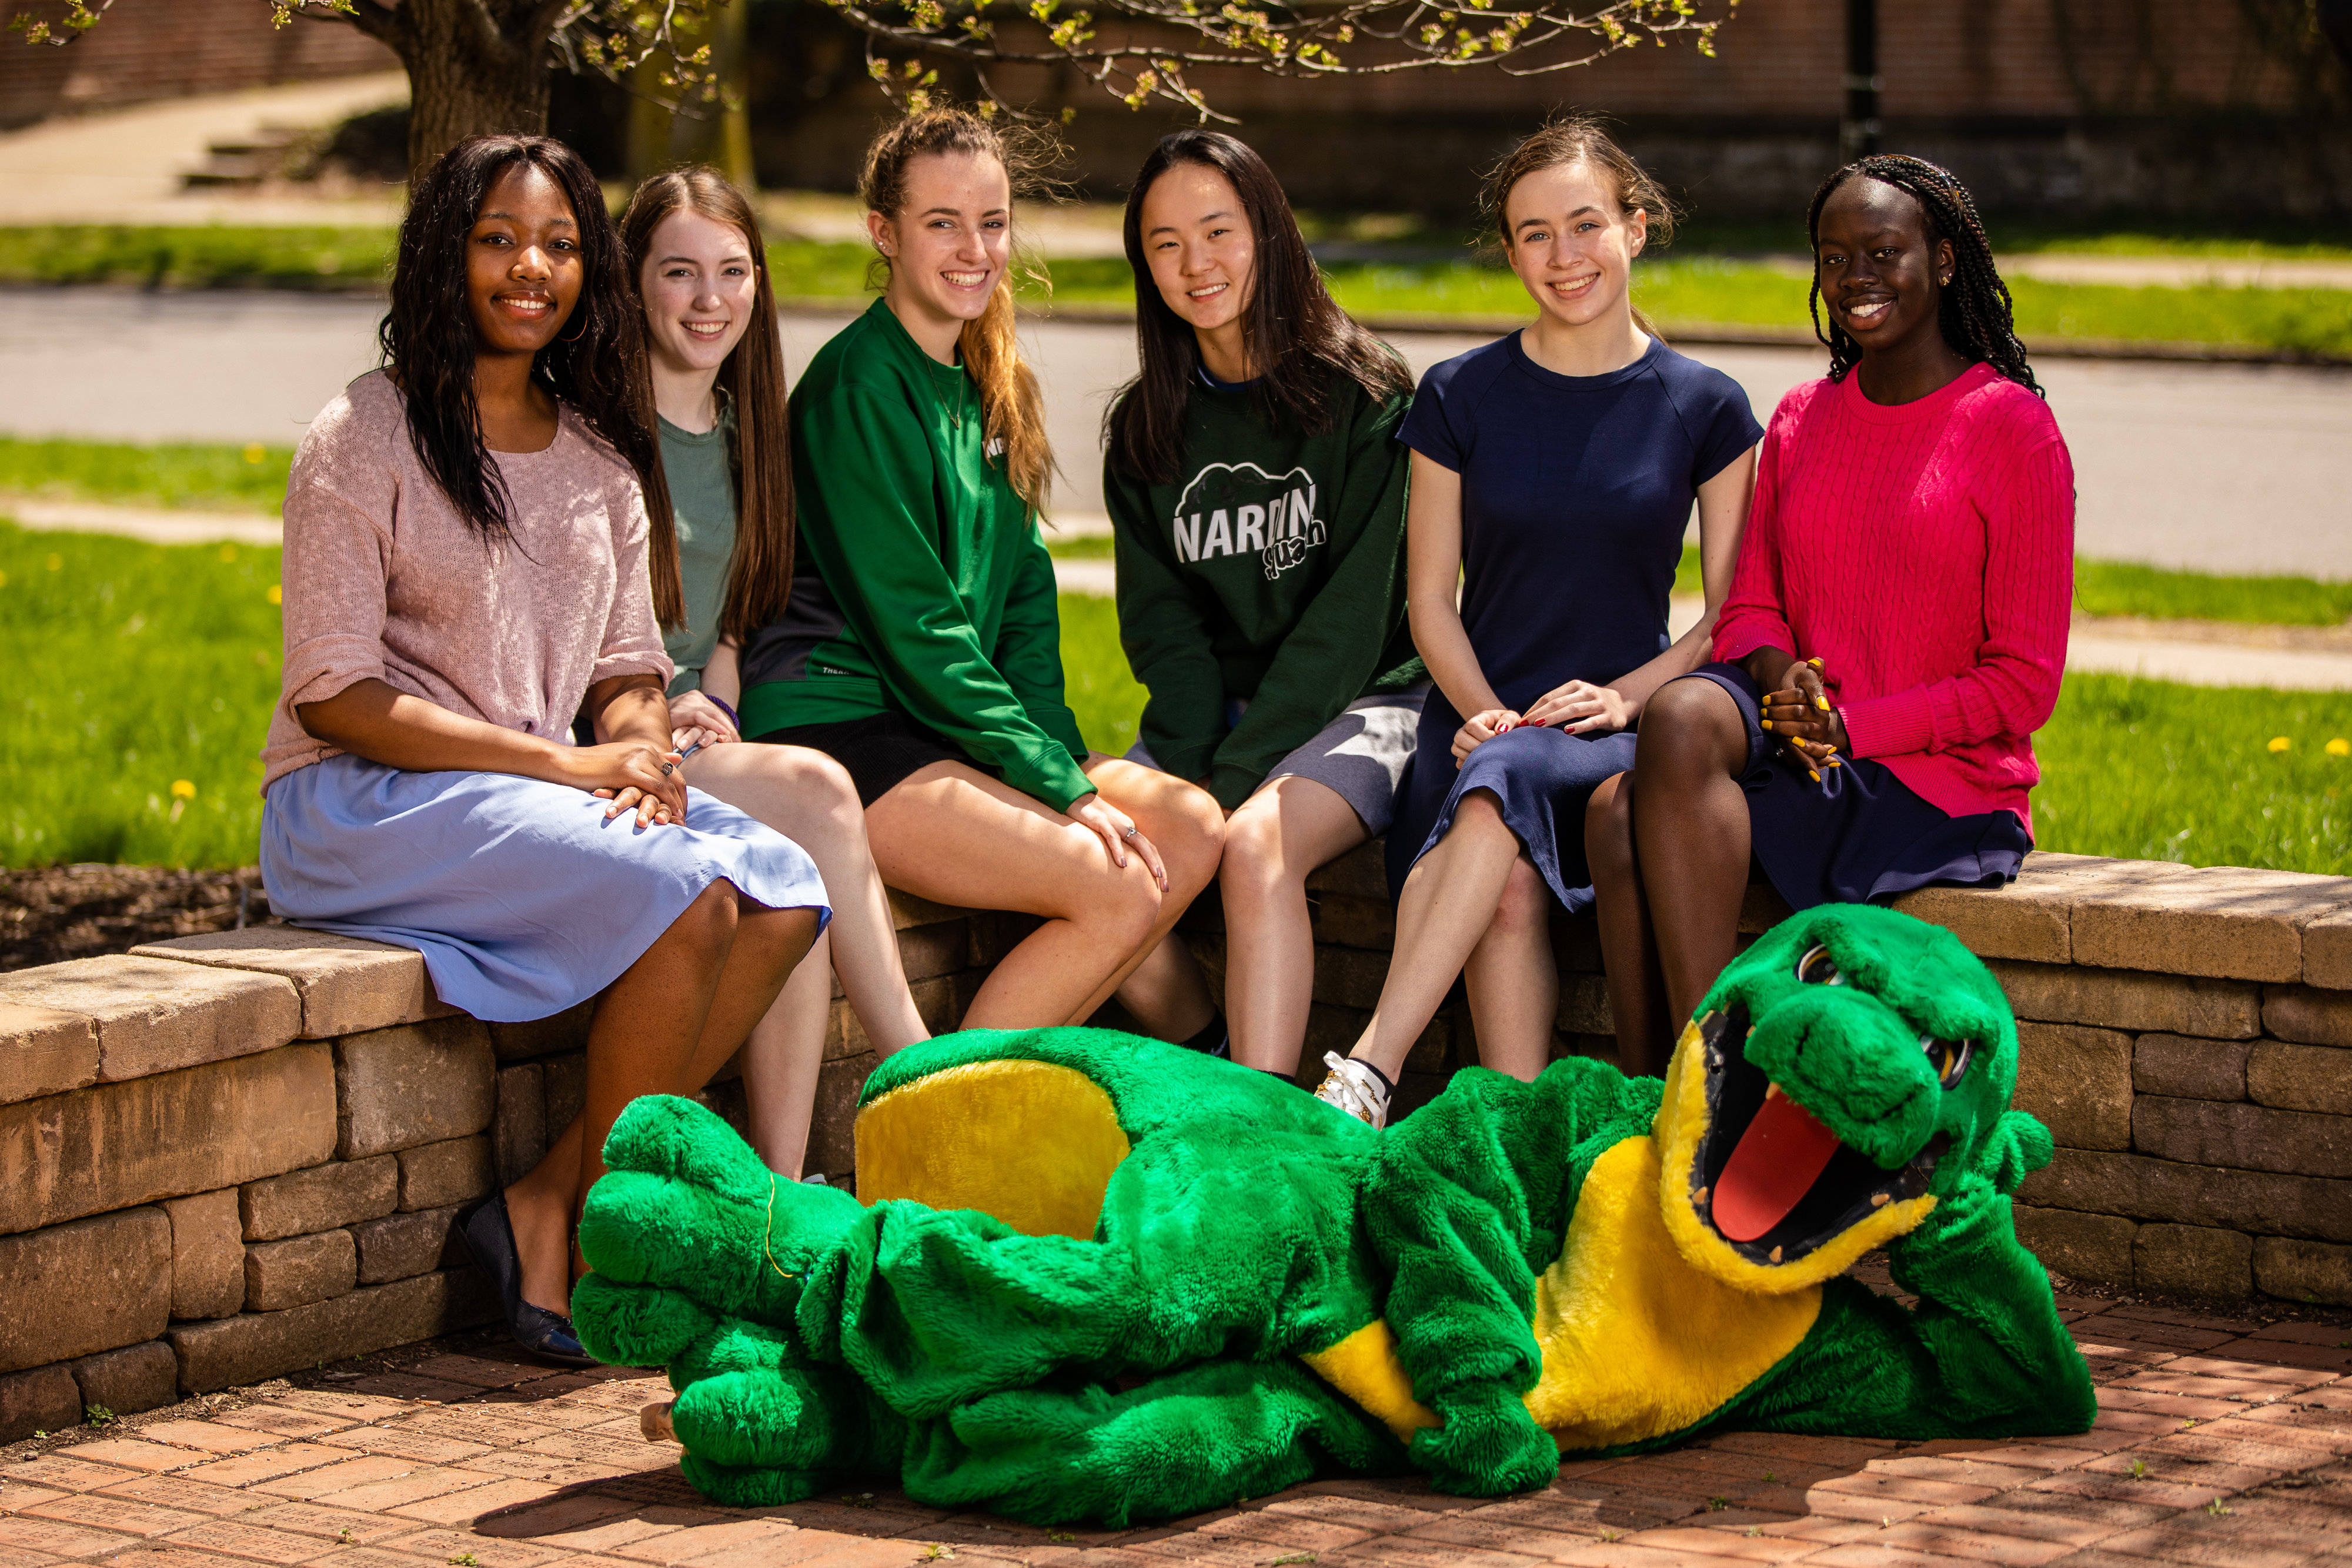 Six Nardin Girls with Gator Mascot